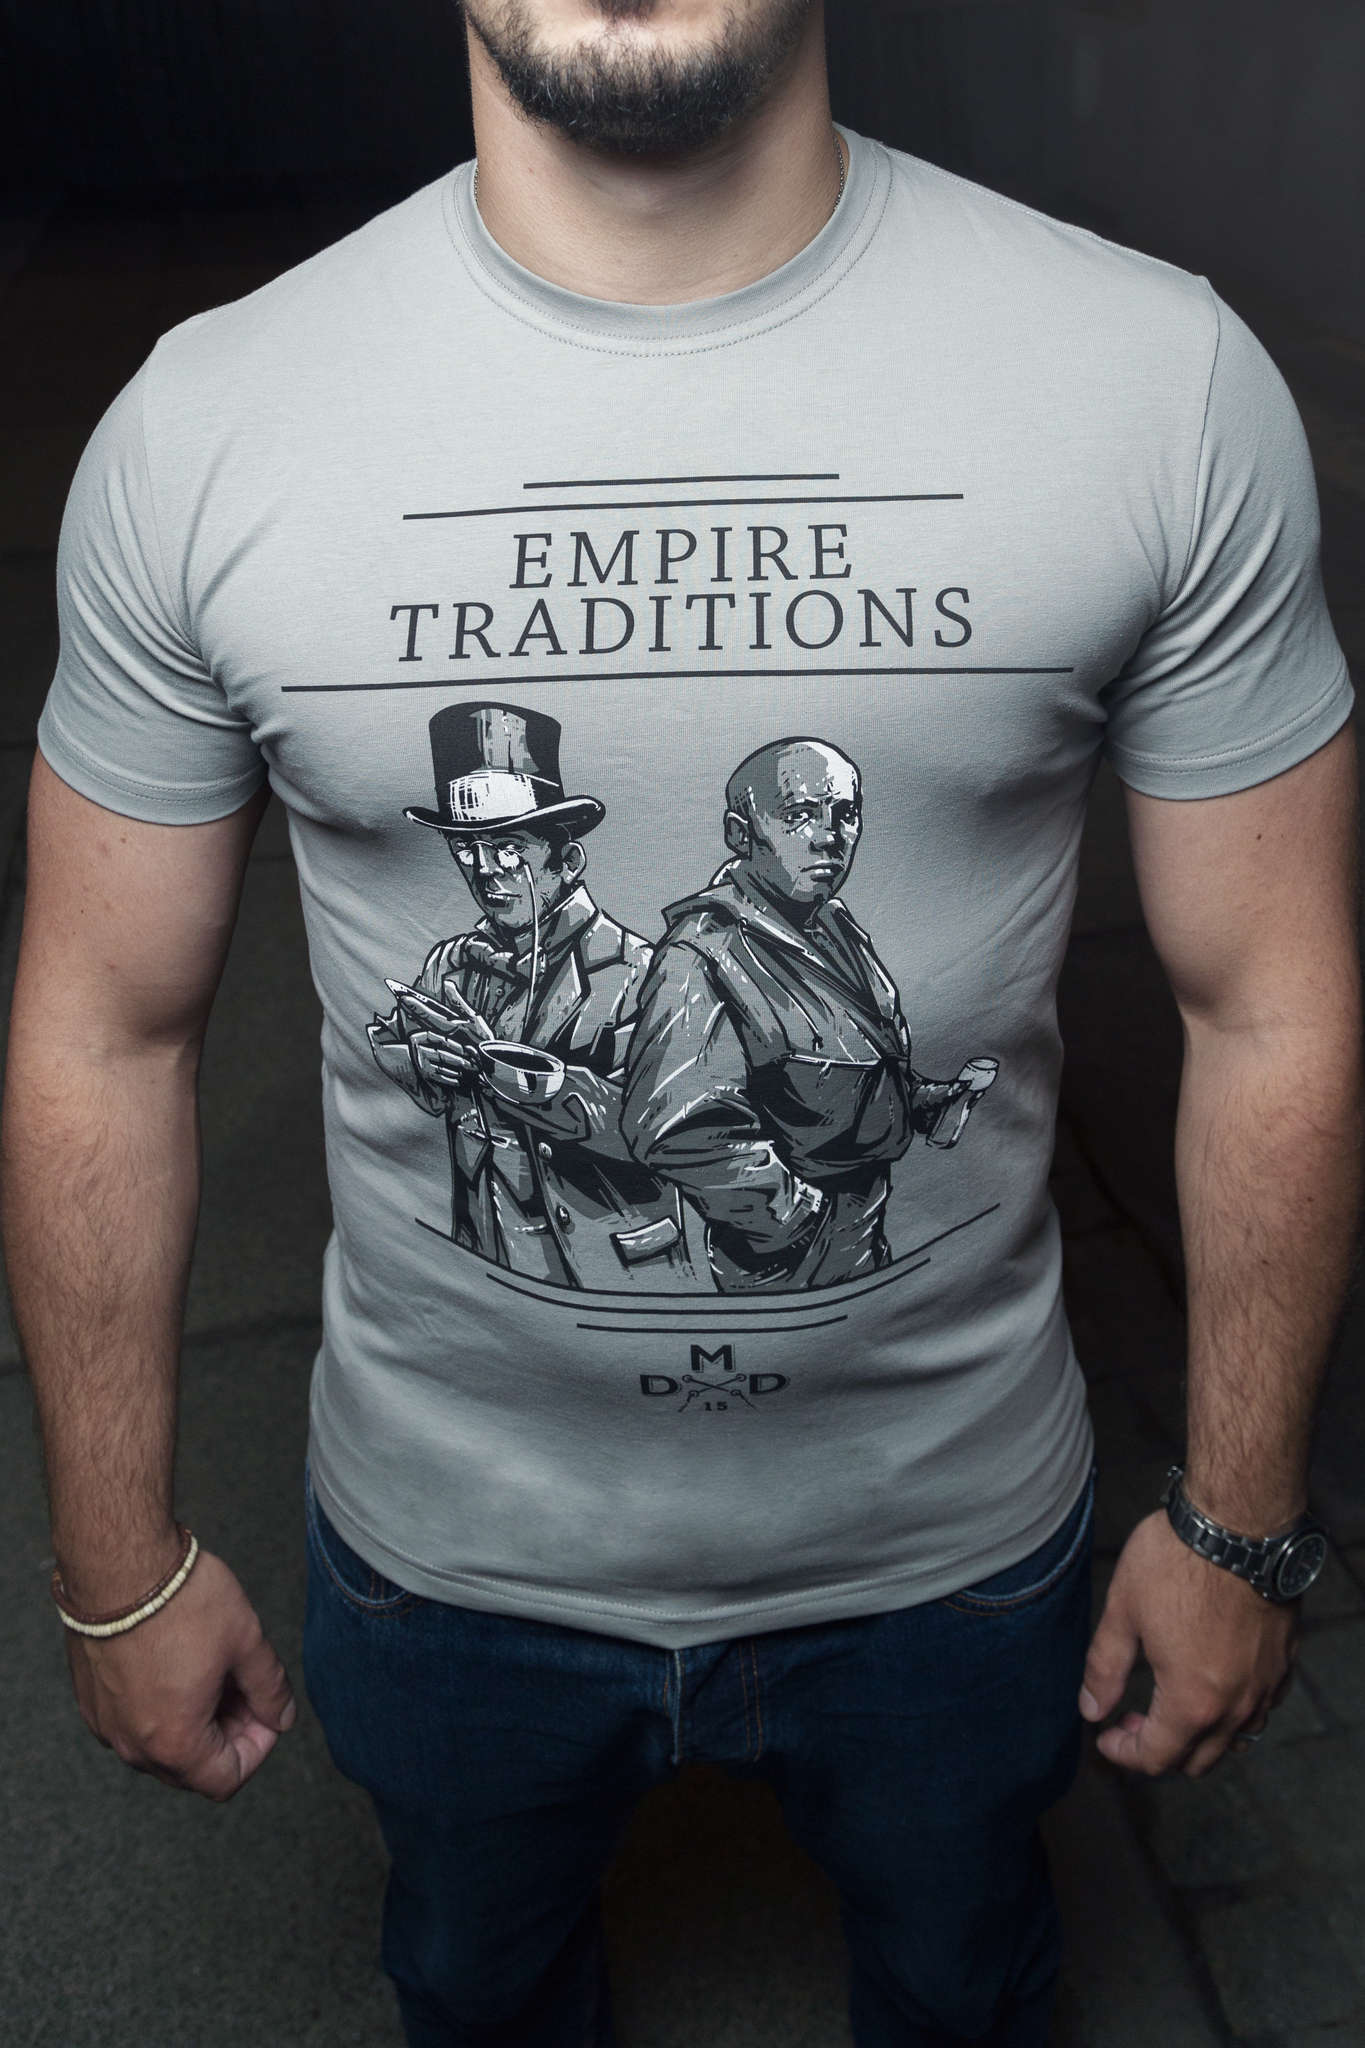 Empire traditions old version